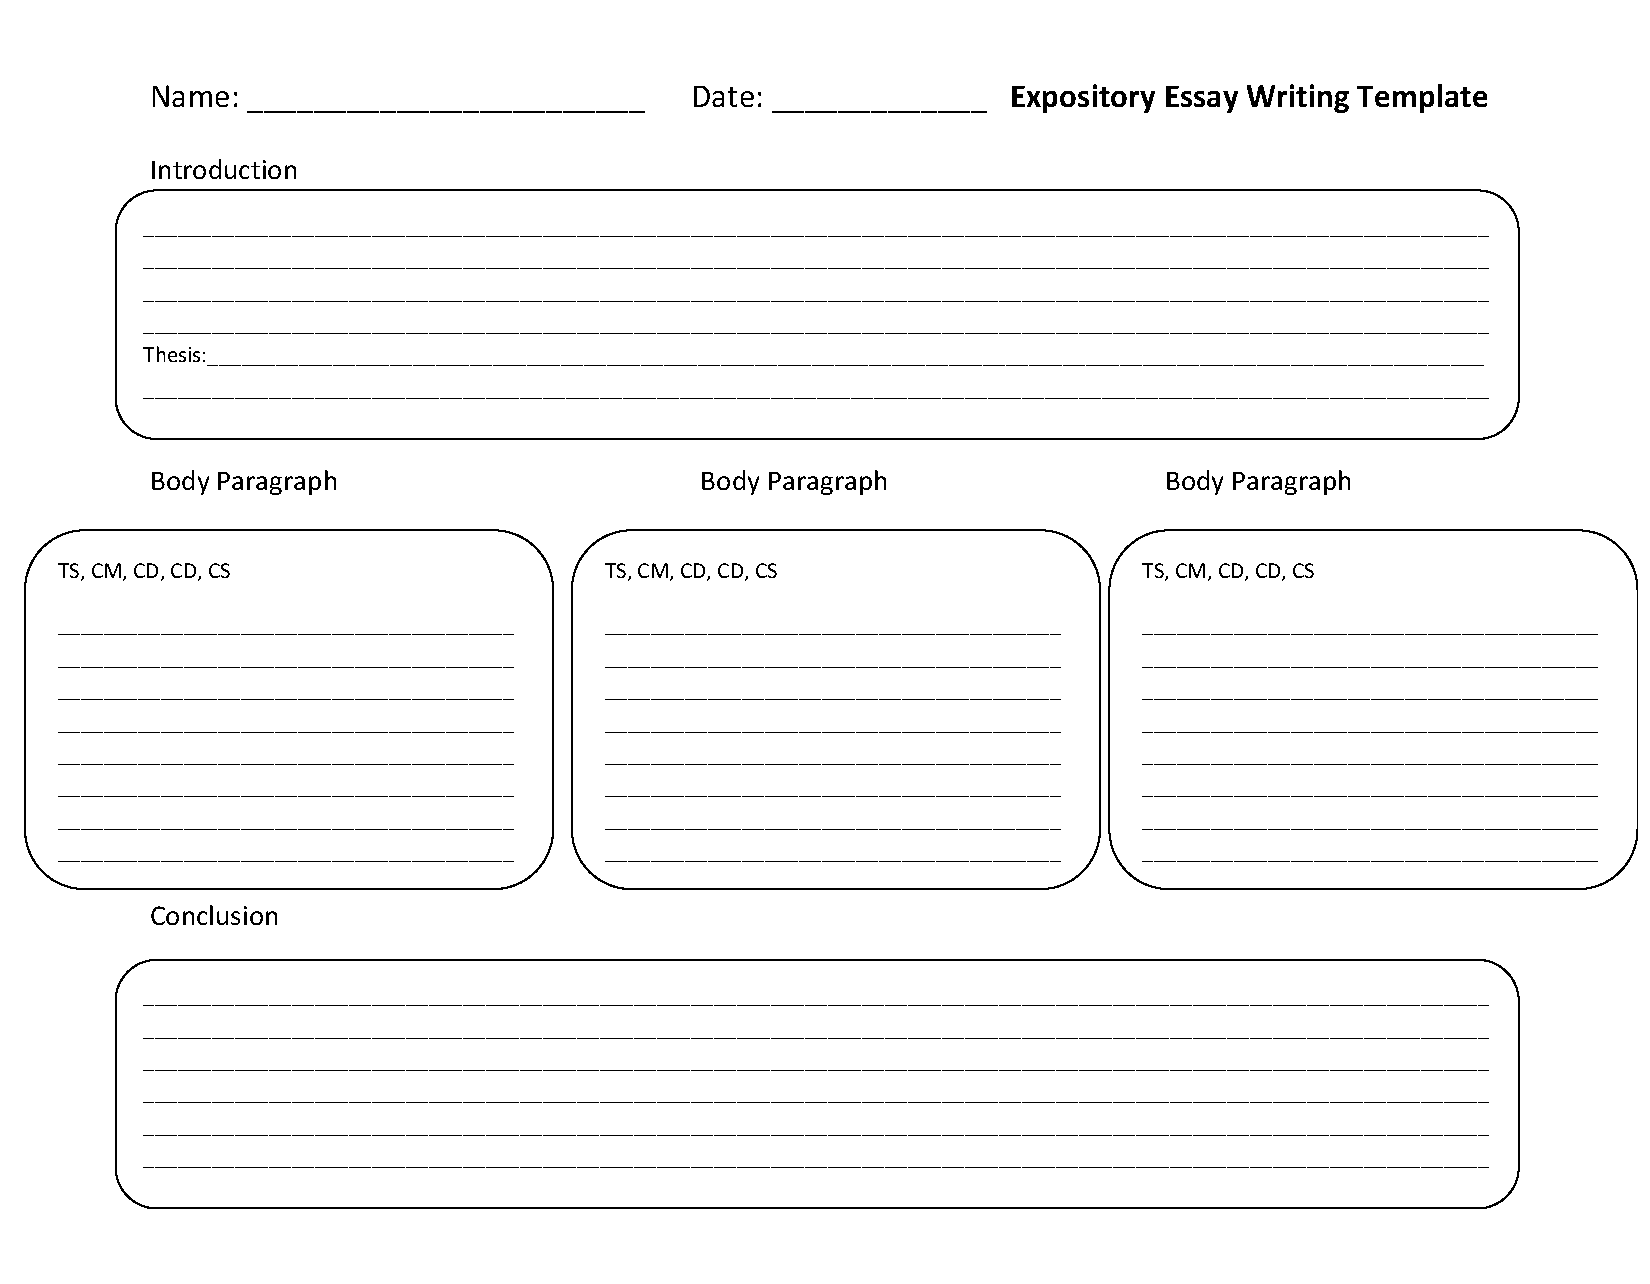 Expository Essay Writing Template Worksheet